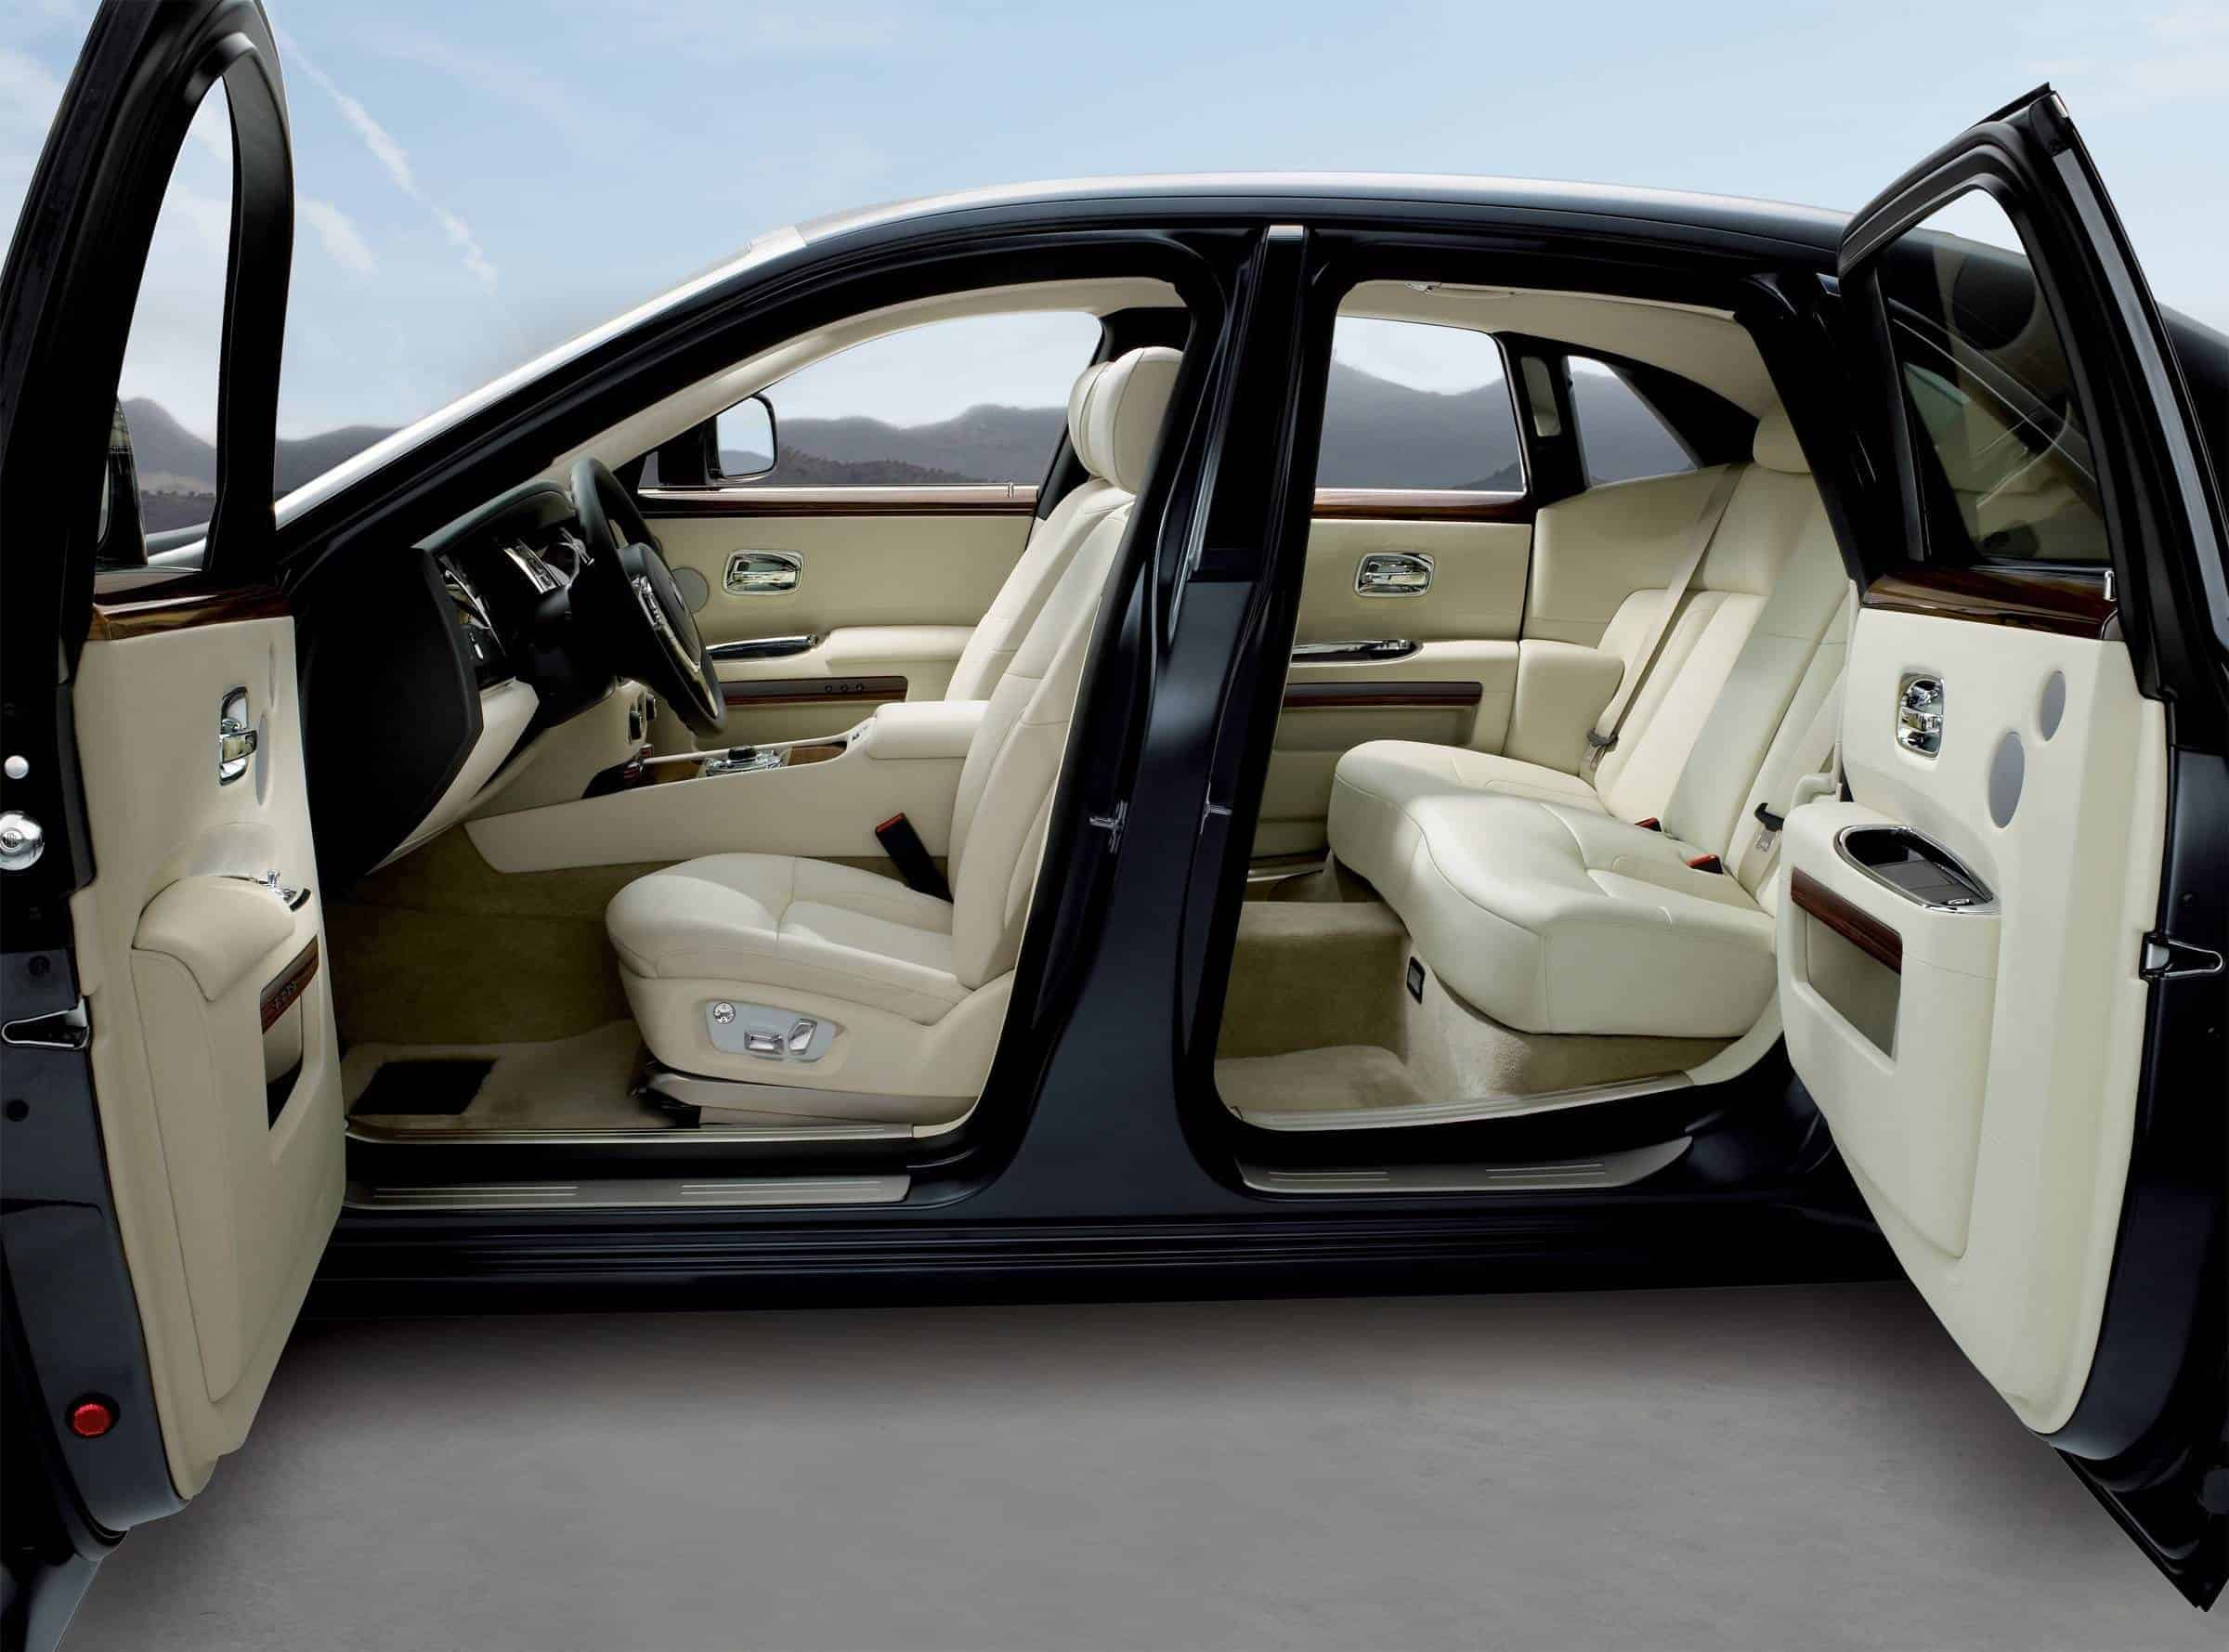 The interior of a Rolls-Royce vehicle.